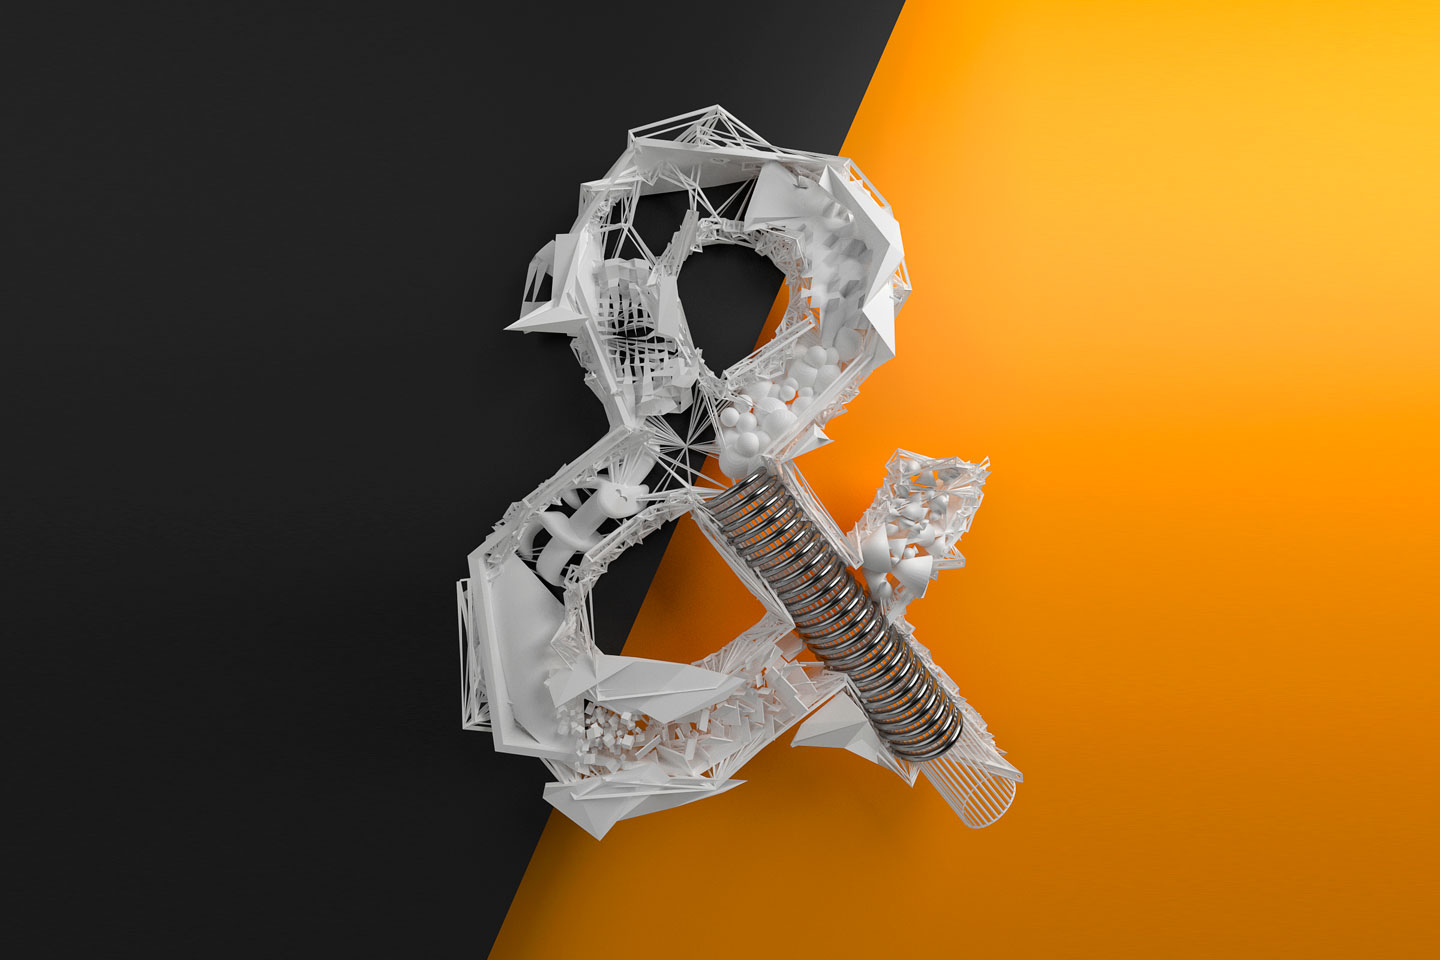 3D Typo – Made by Langeweile